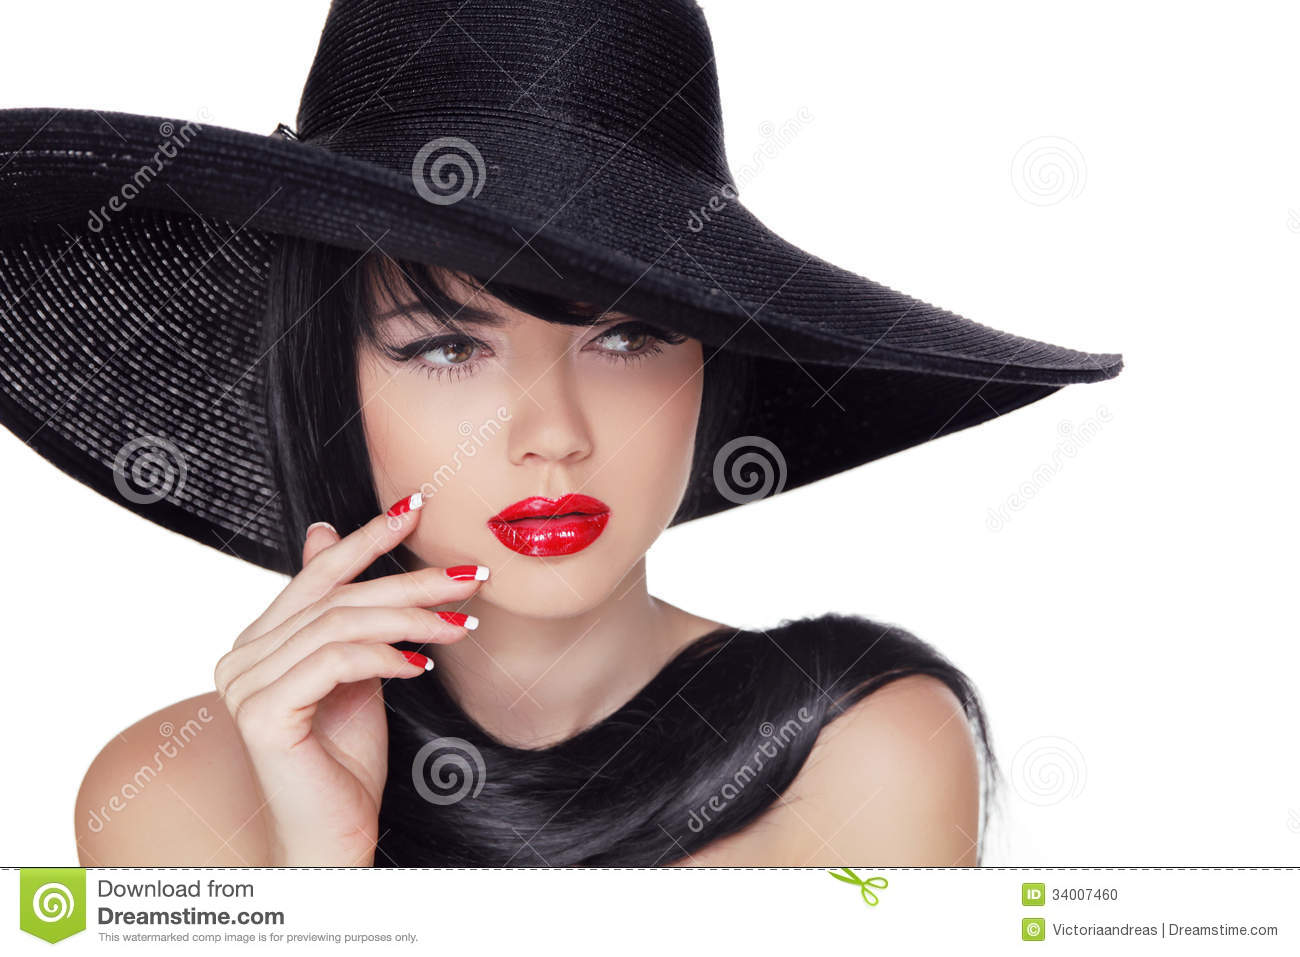 beauty vogue style fashion model girl in black hat